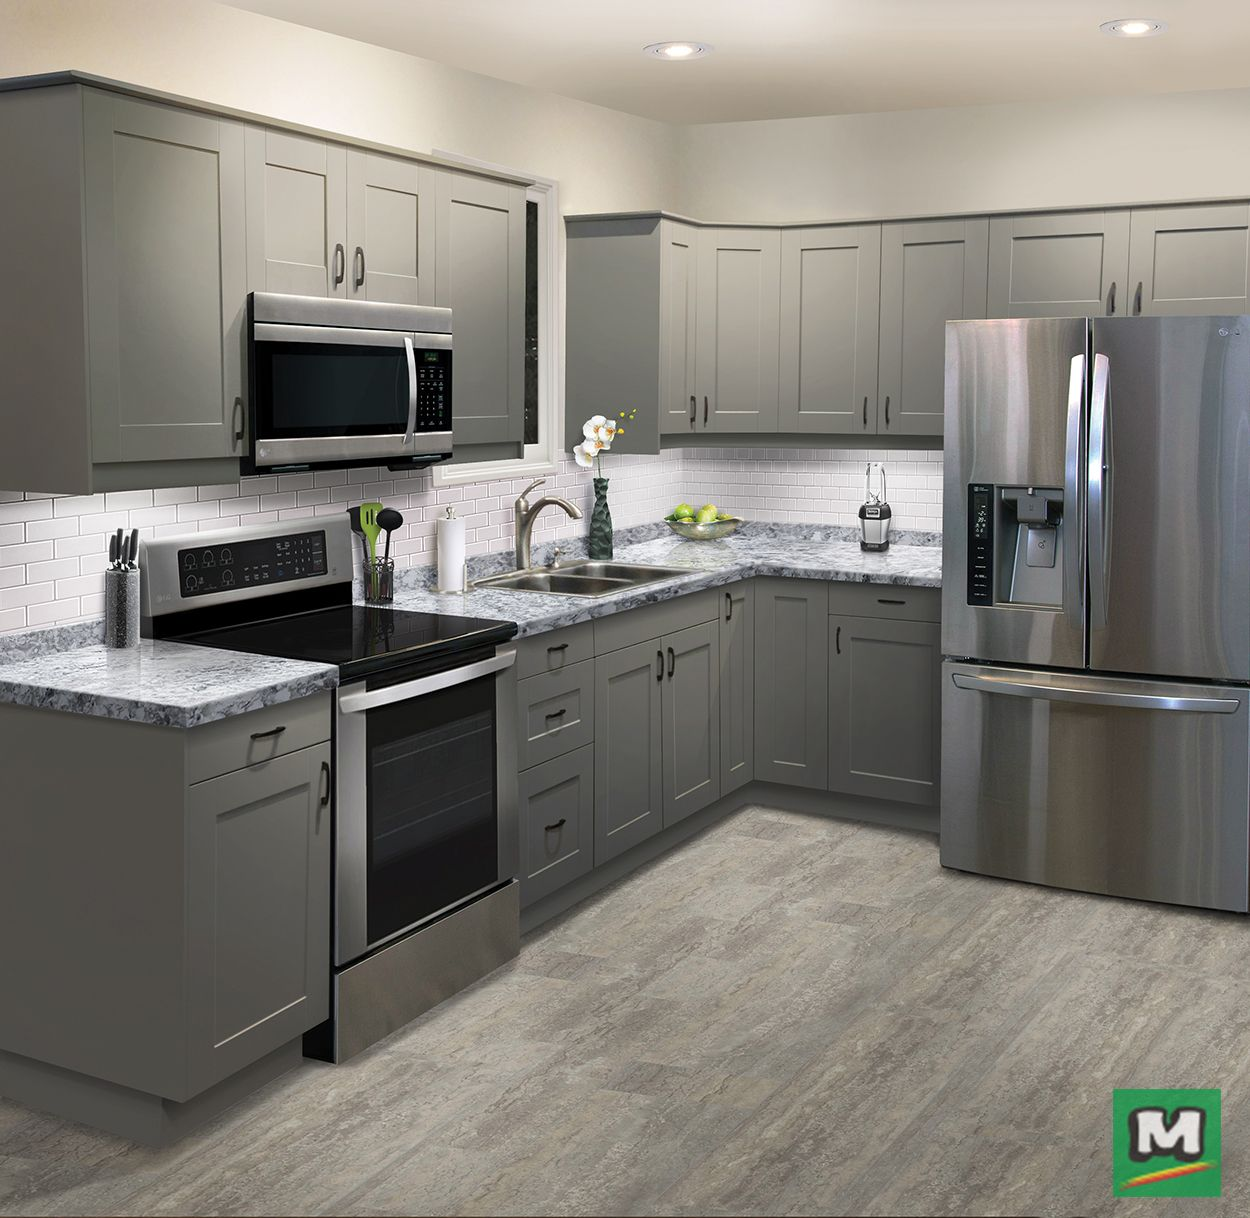 Klearvue Cabinetry Has It All From Full Access Cabinet Construction To Elegant Finishes This Custo Menards Kitchen Cabinets Menards Kitchen L Shaped Kitchen